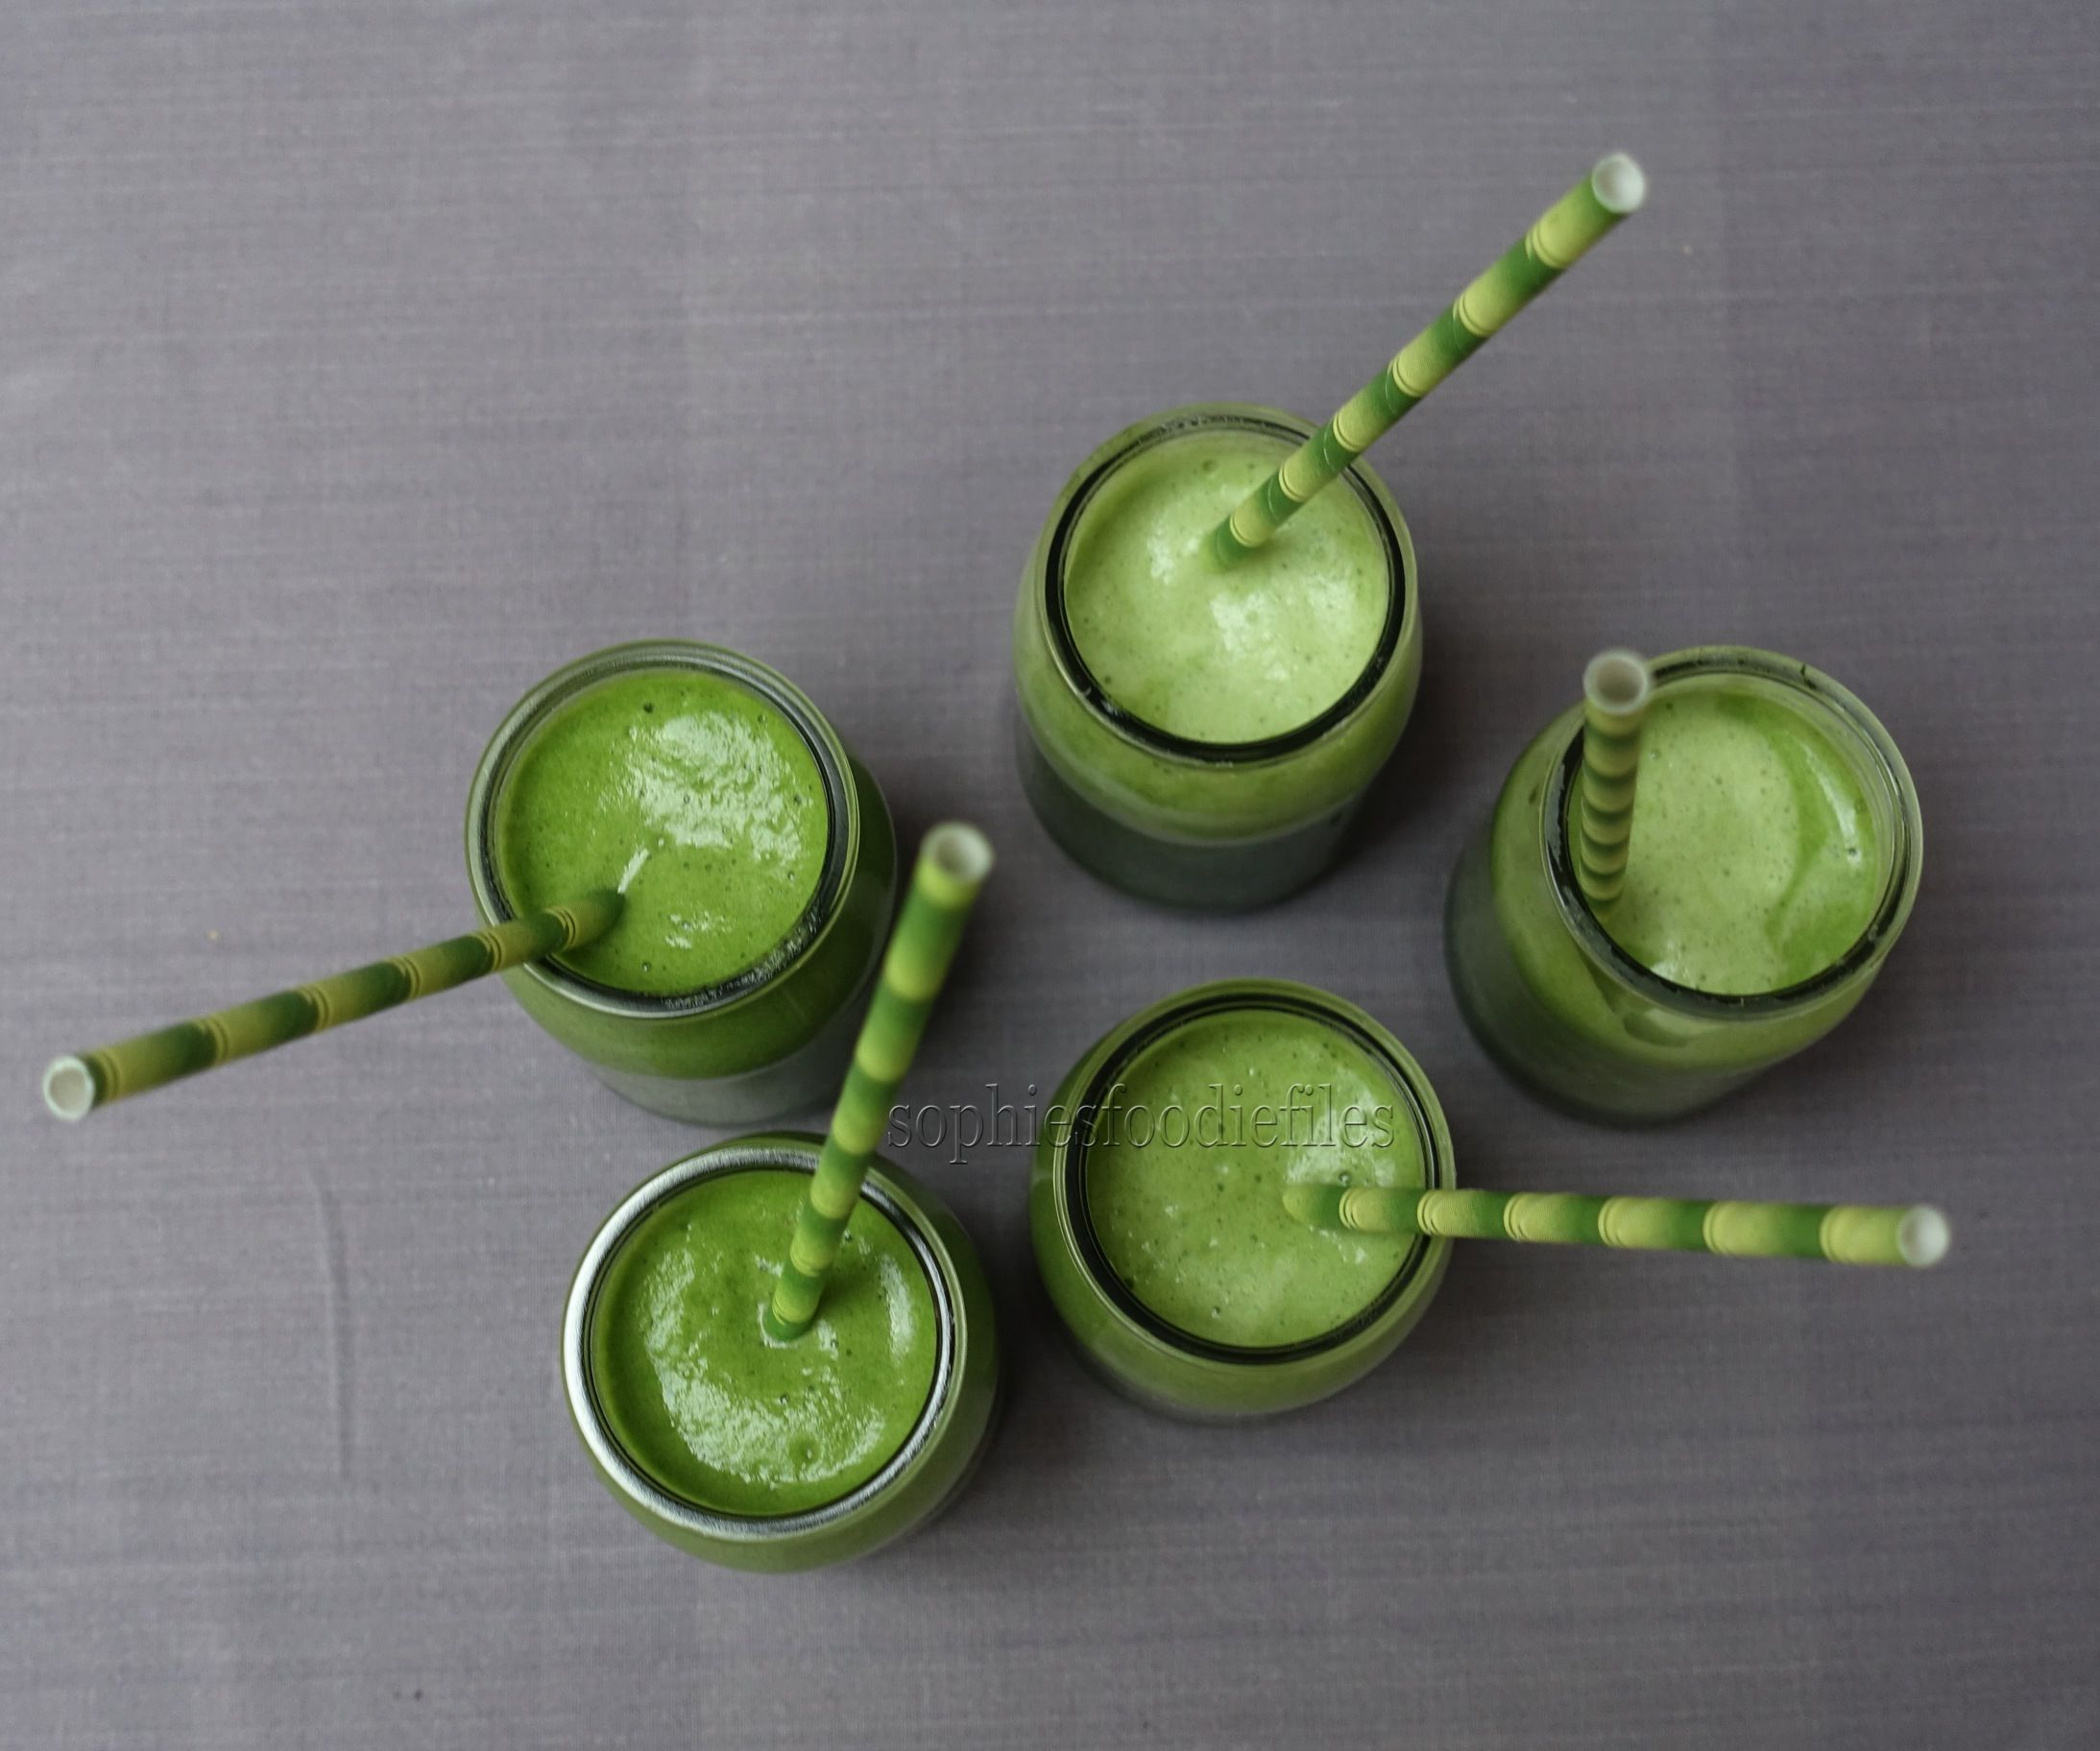 4-ingredient Green Smoothies